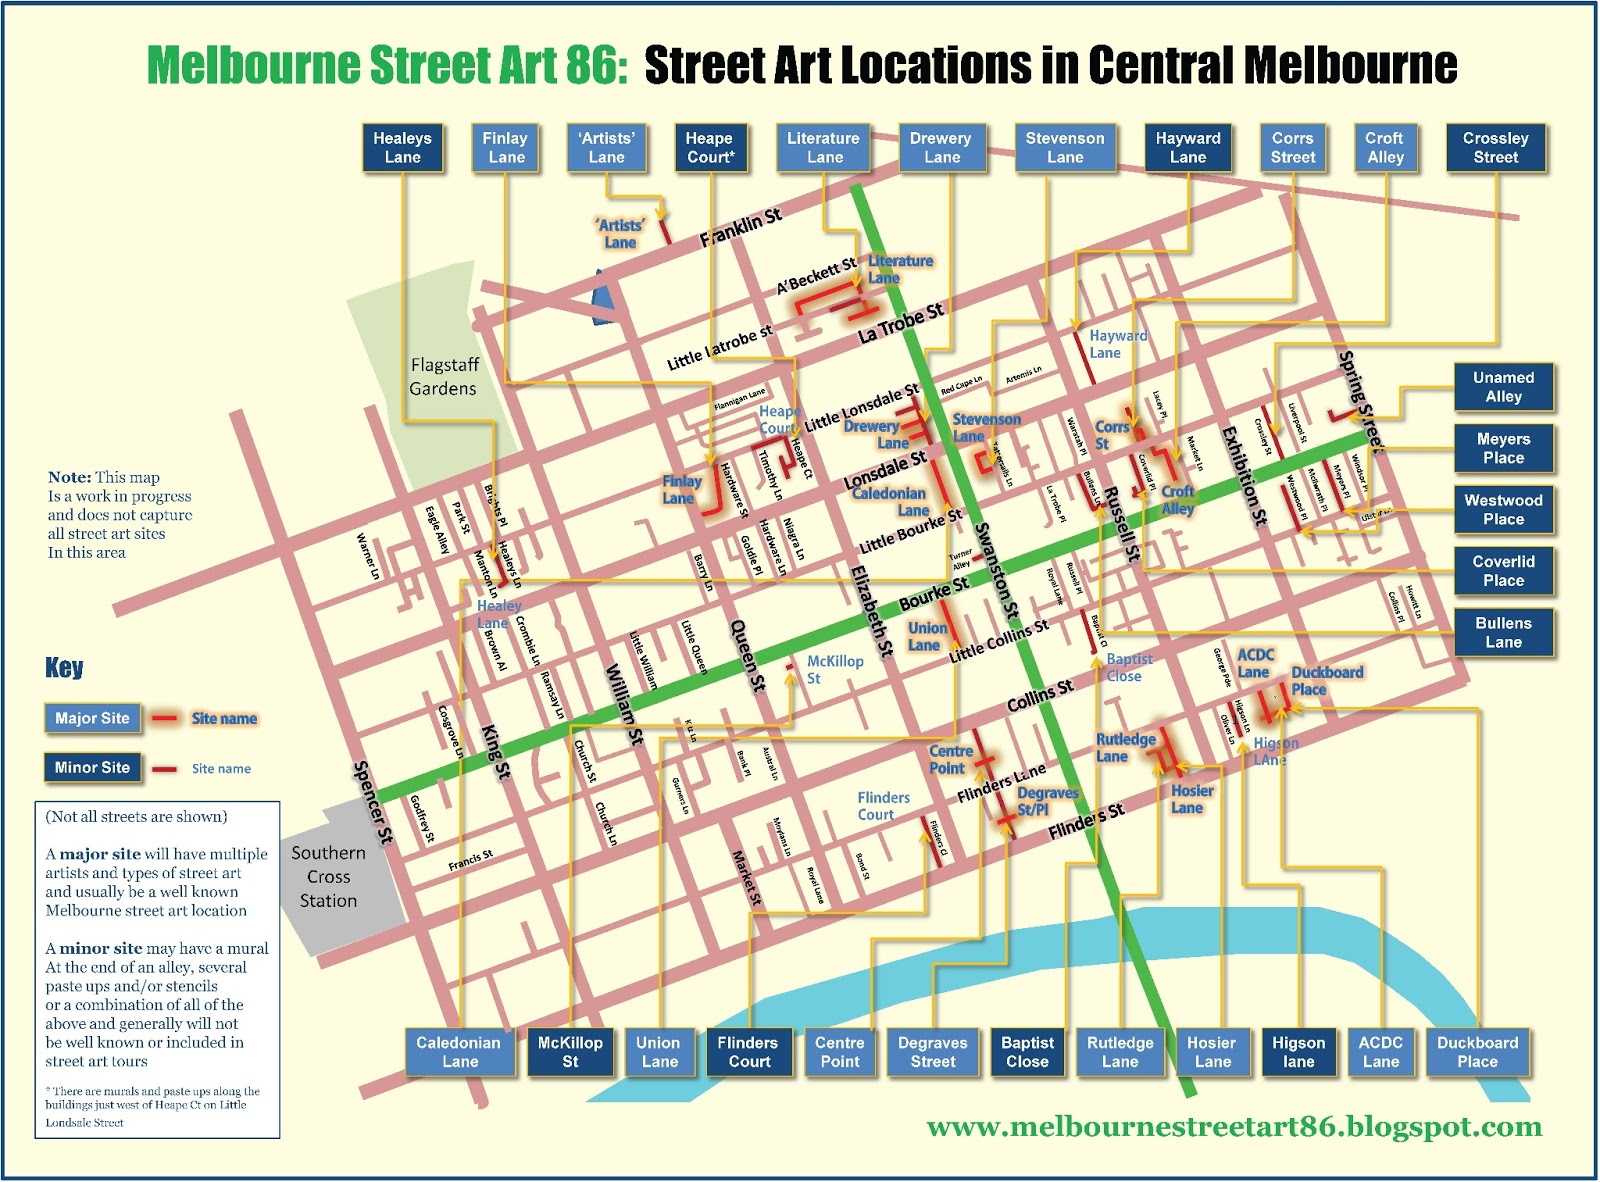 Melbourne Street Art 86 Map Of Central Melbourne Street Art Locations